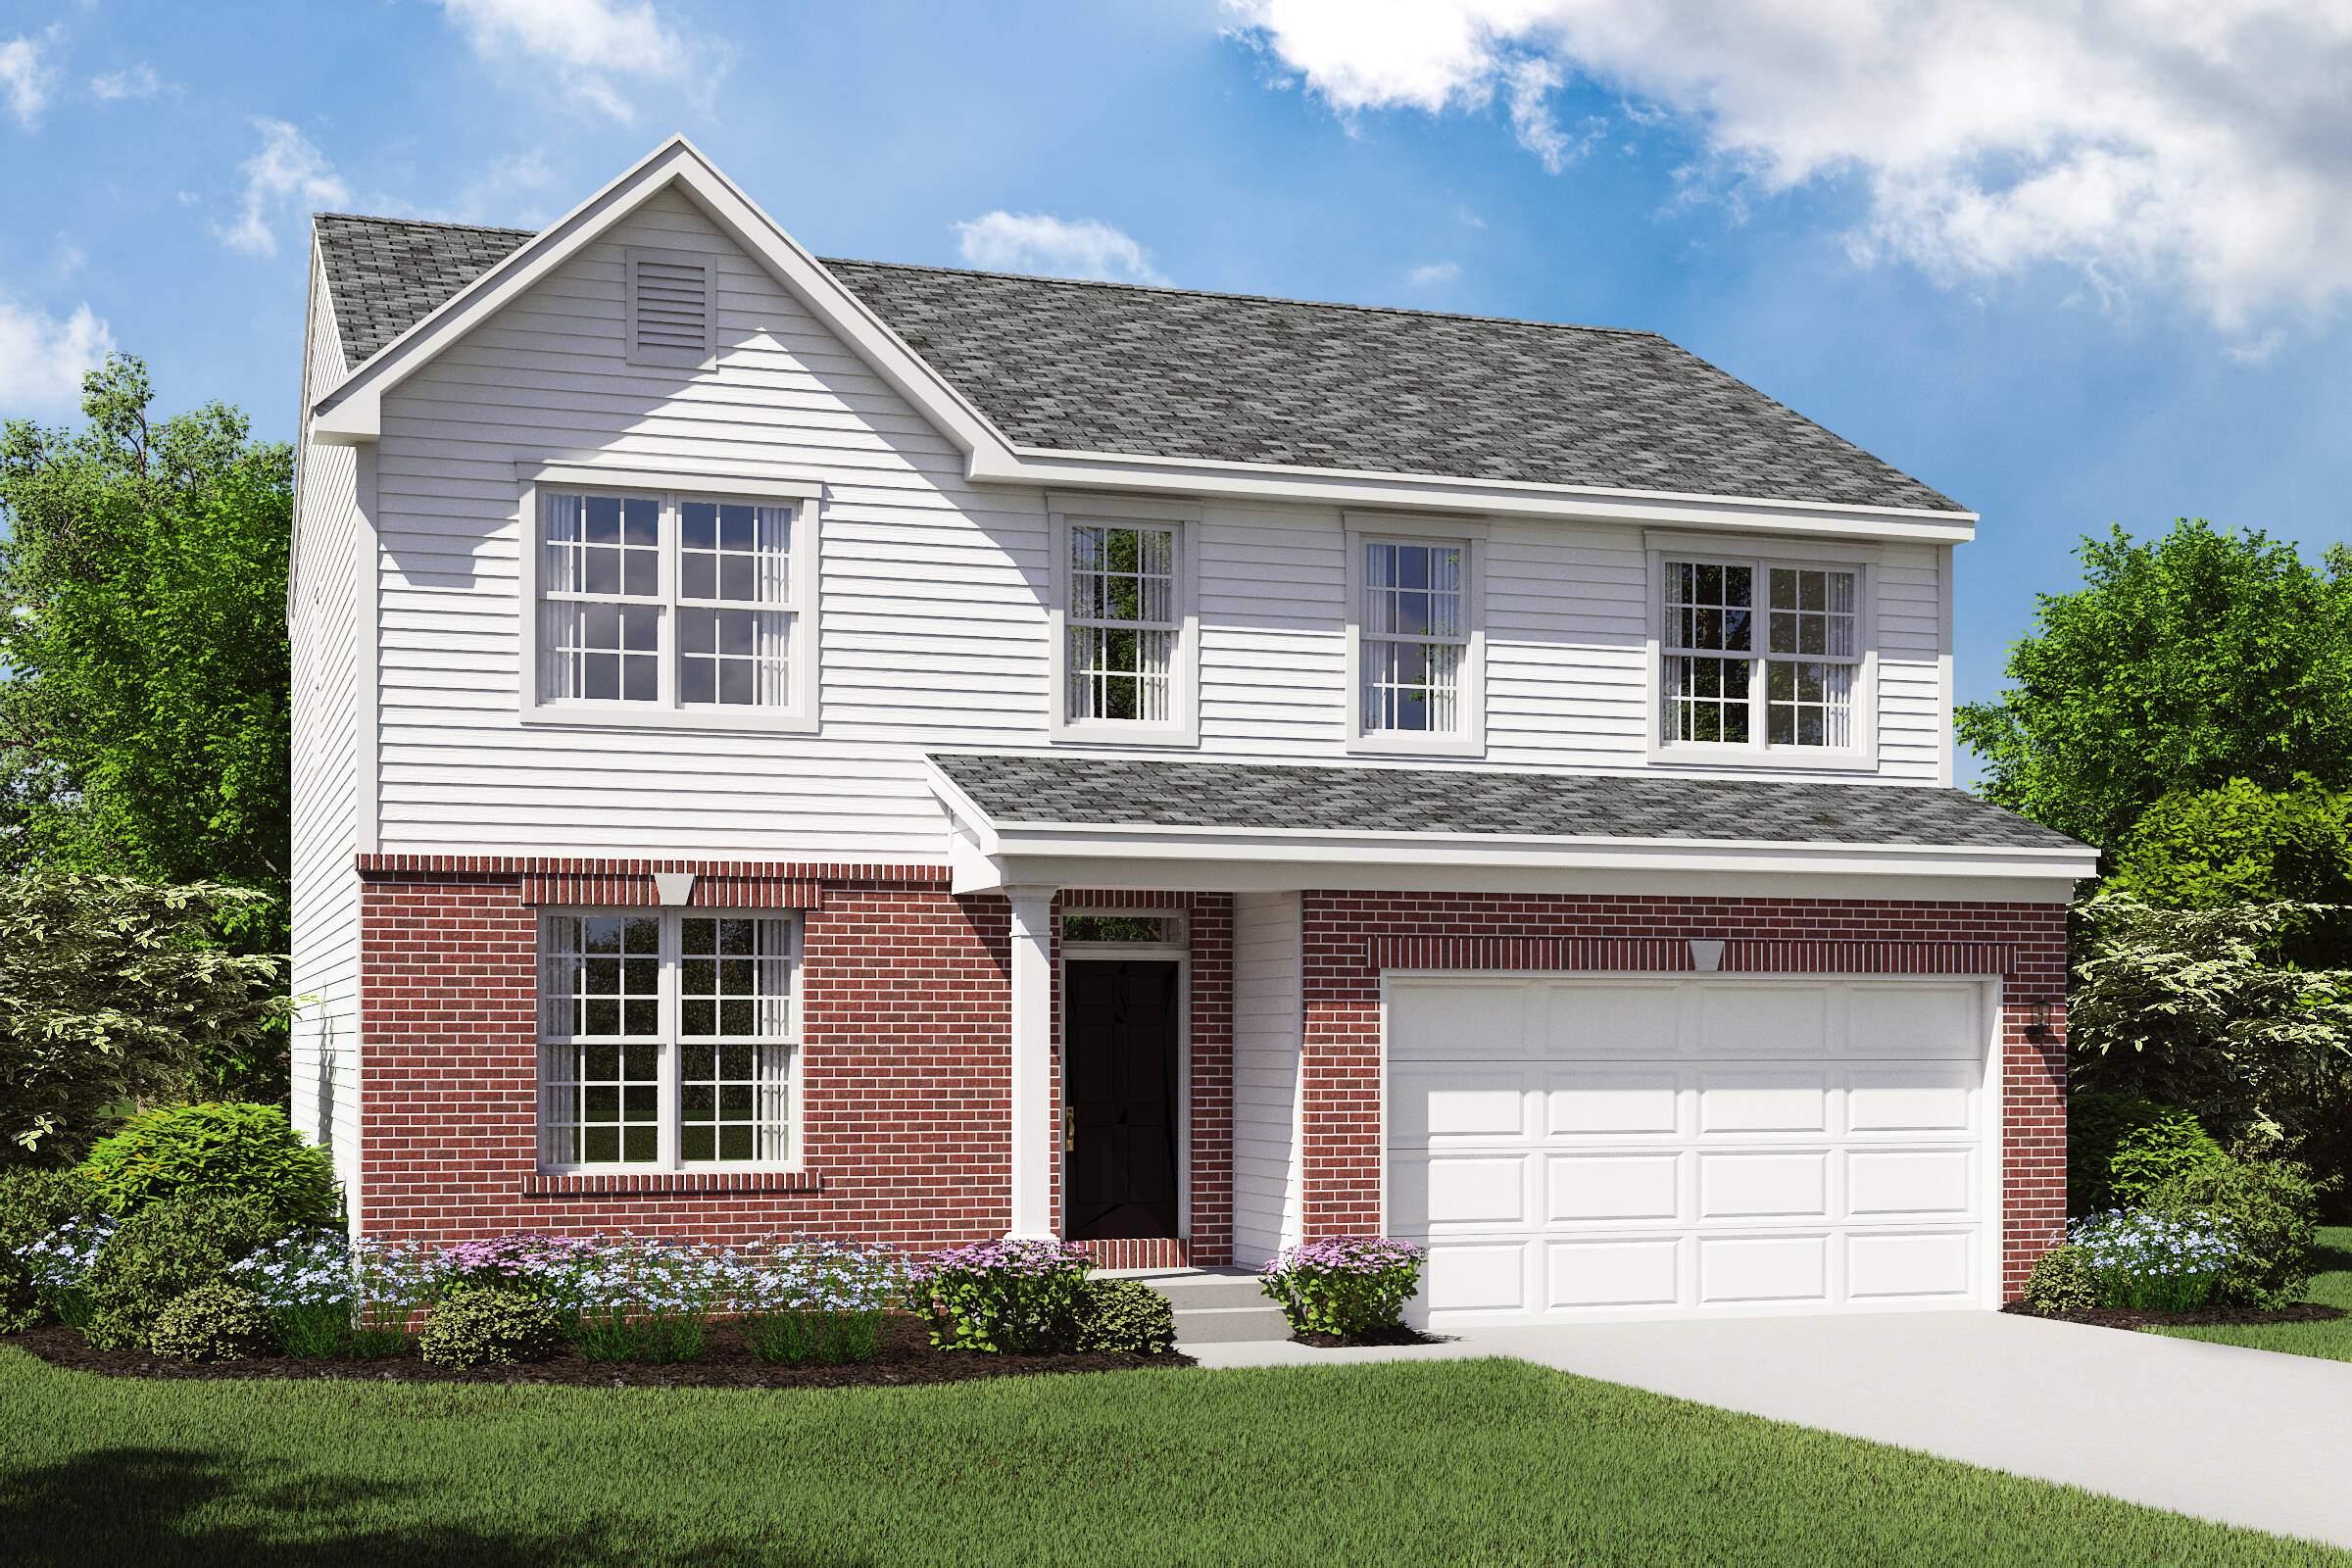 hanover b brick exterior new upscale home design